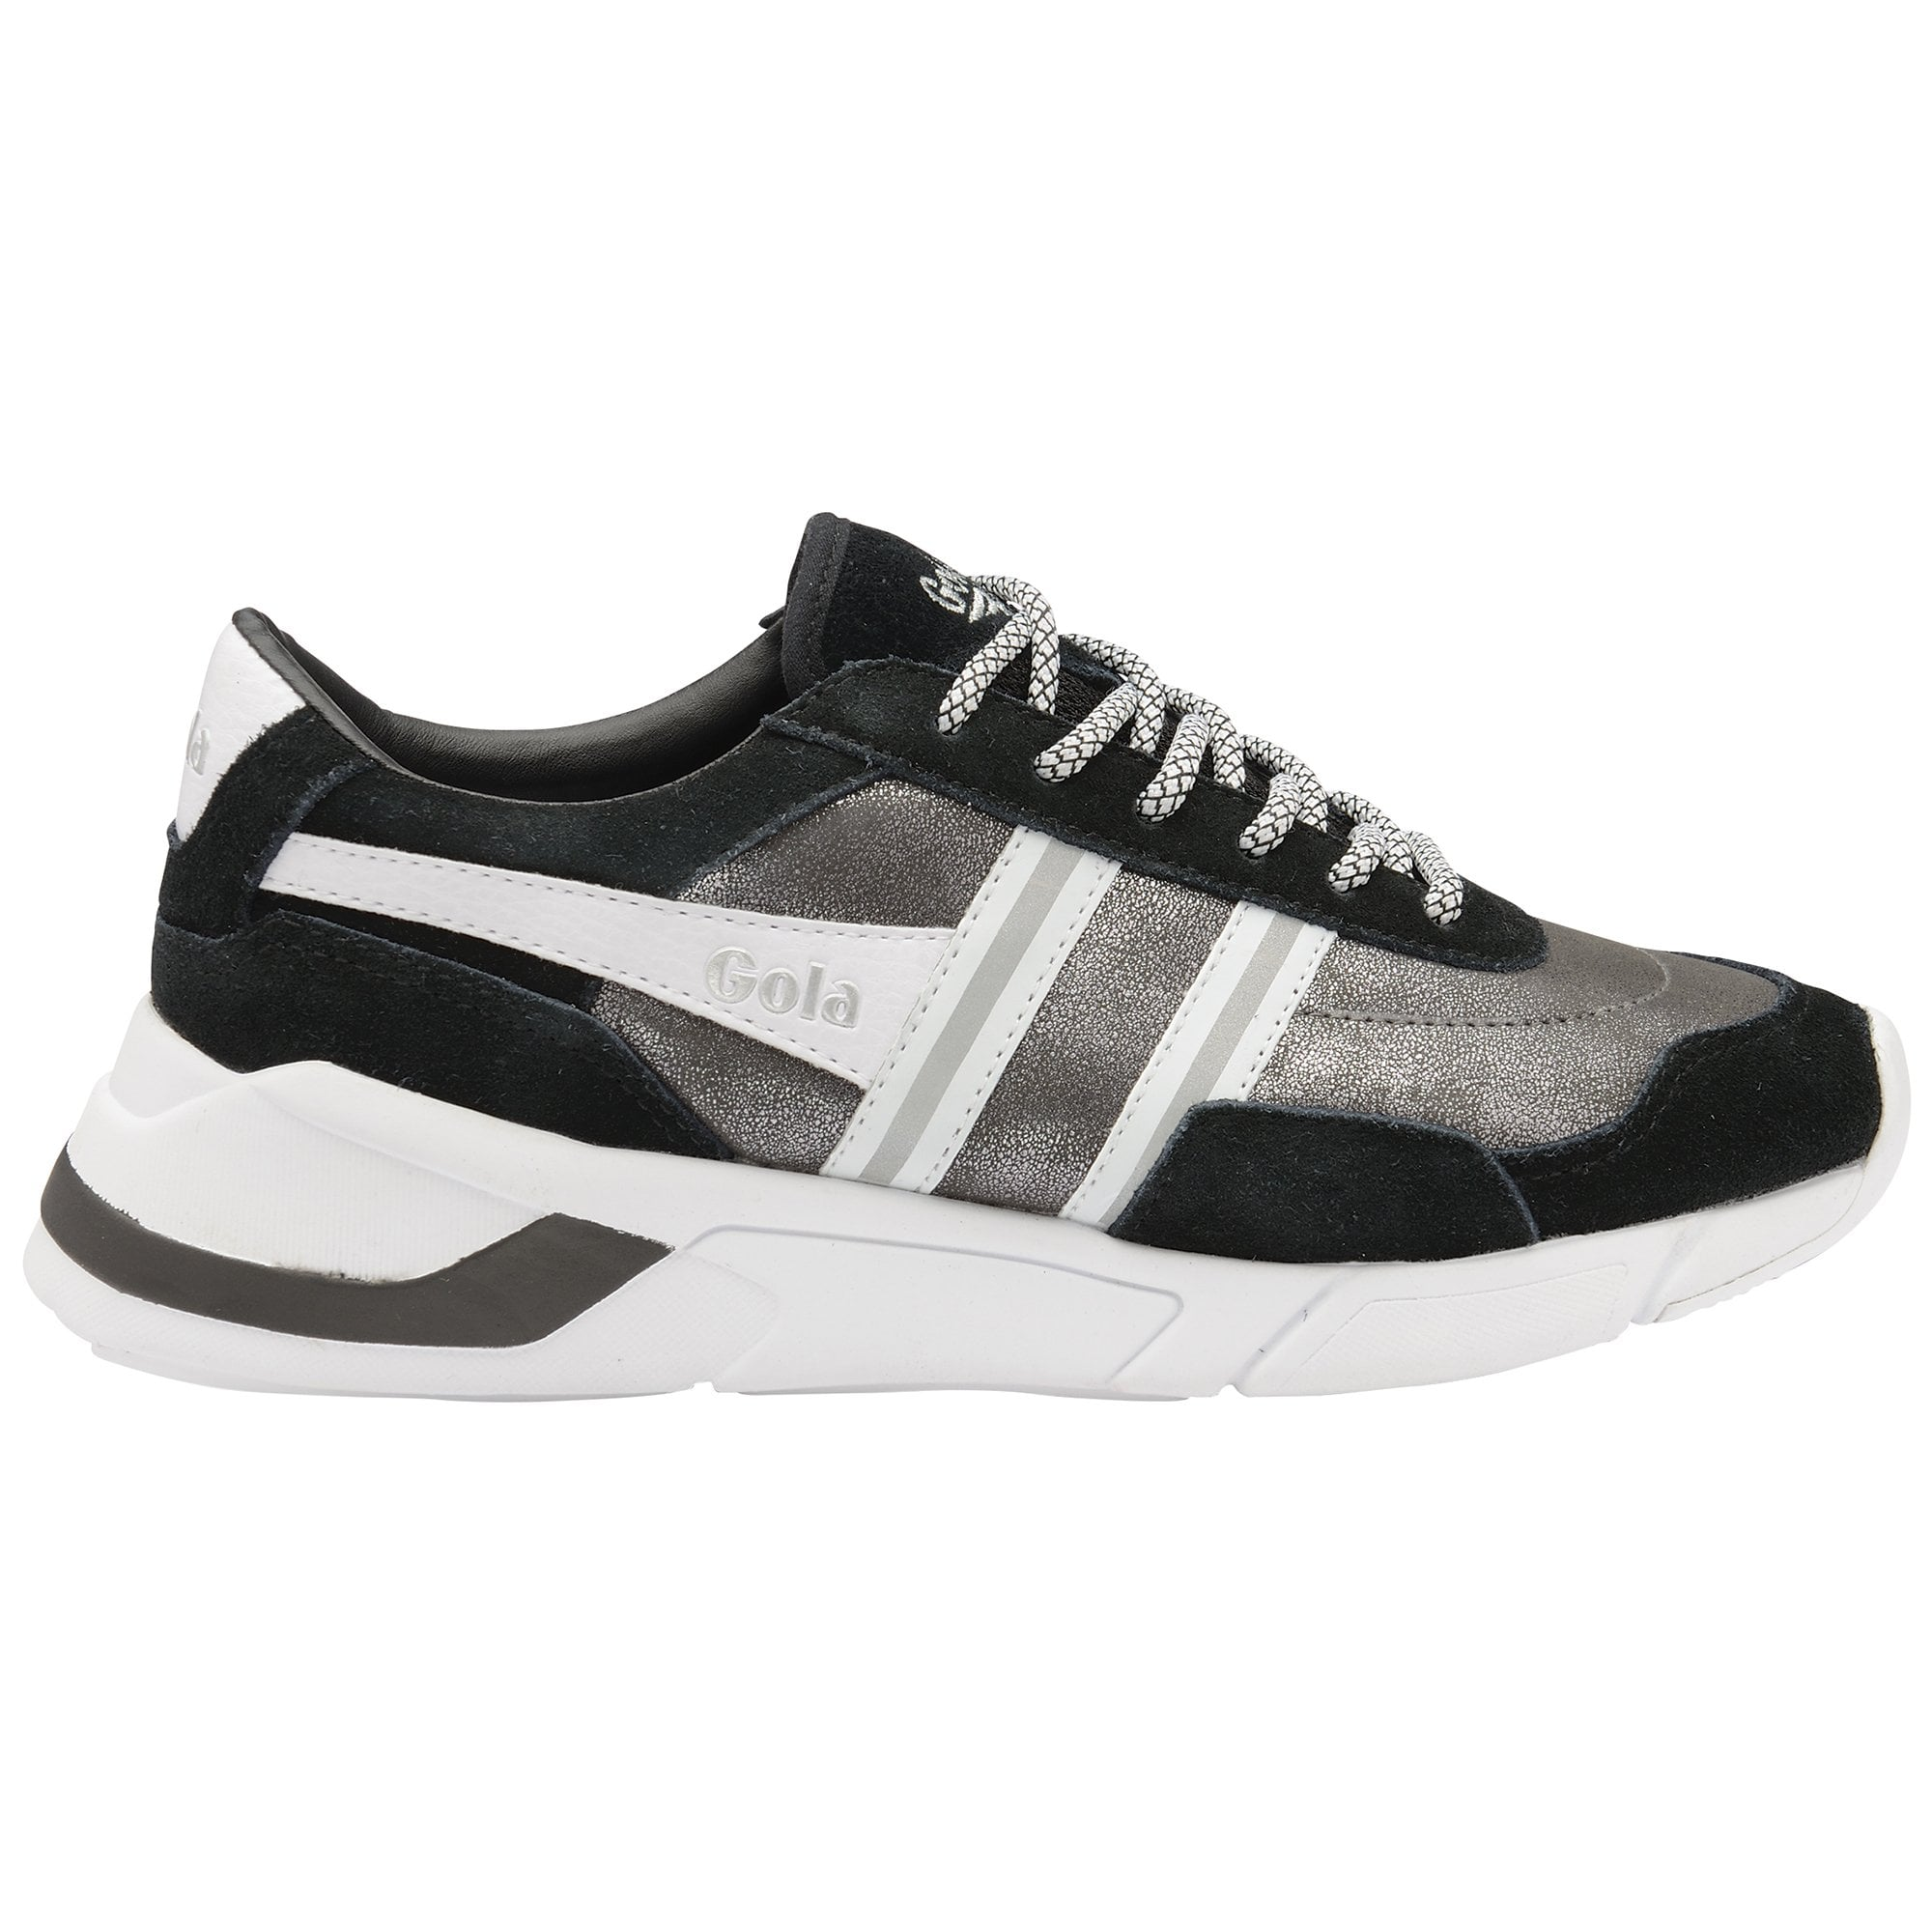 Women's Eclipse Spark Trainer